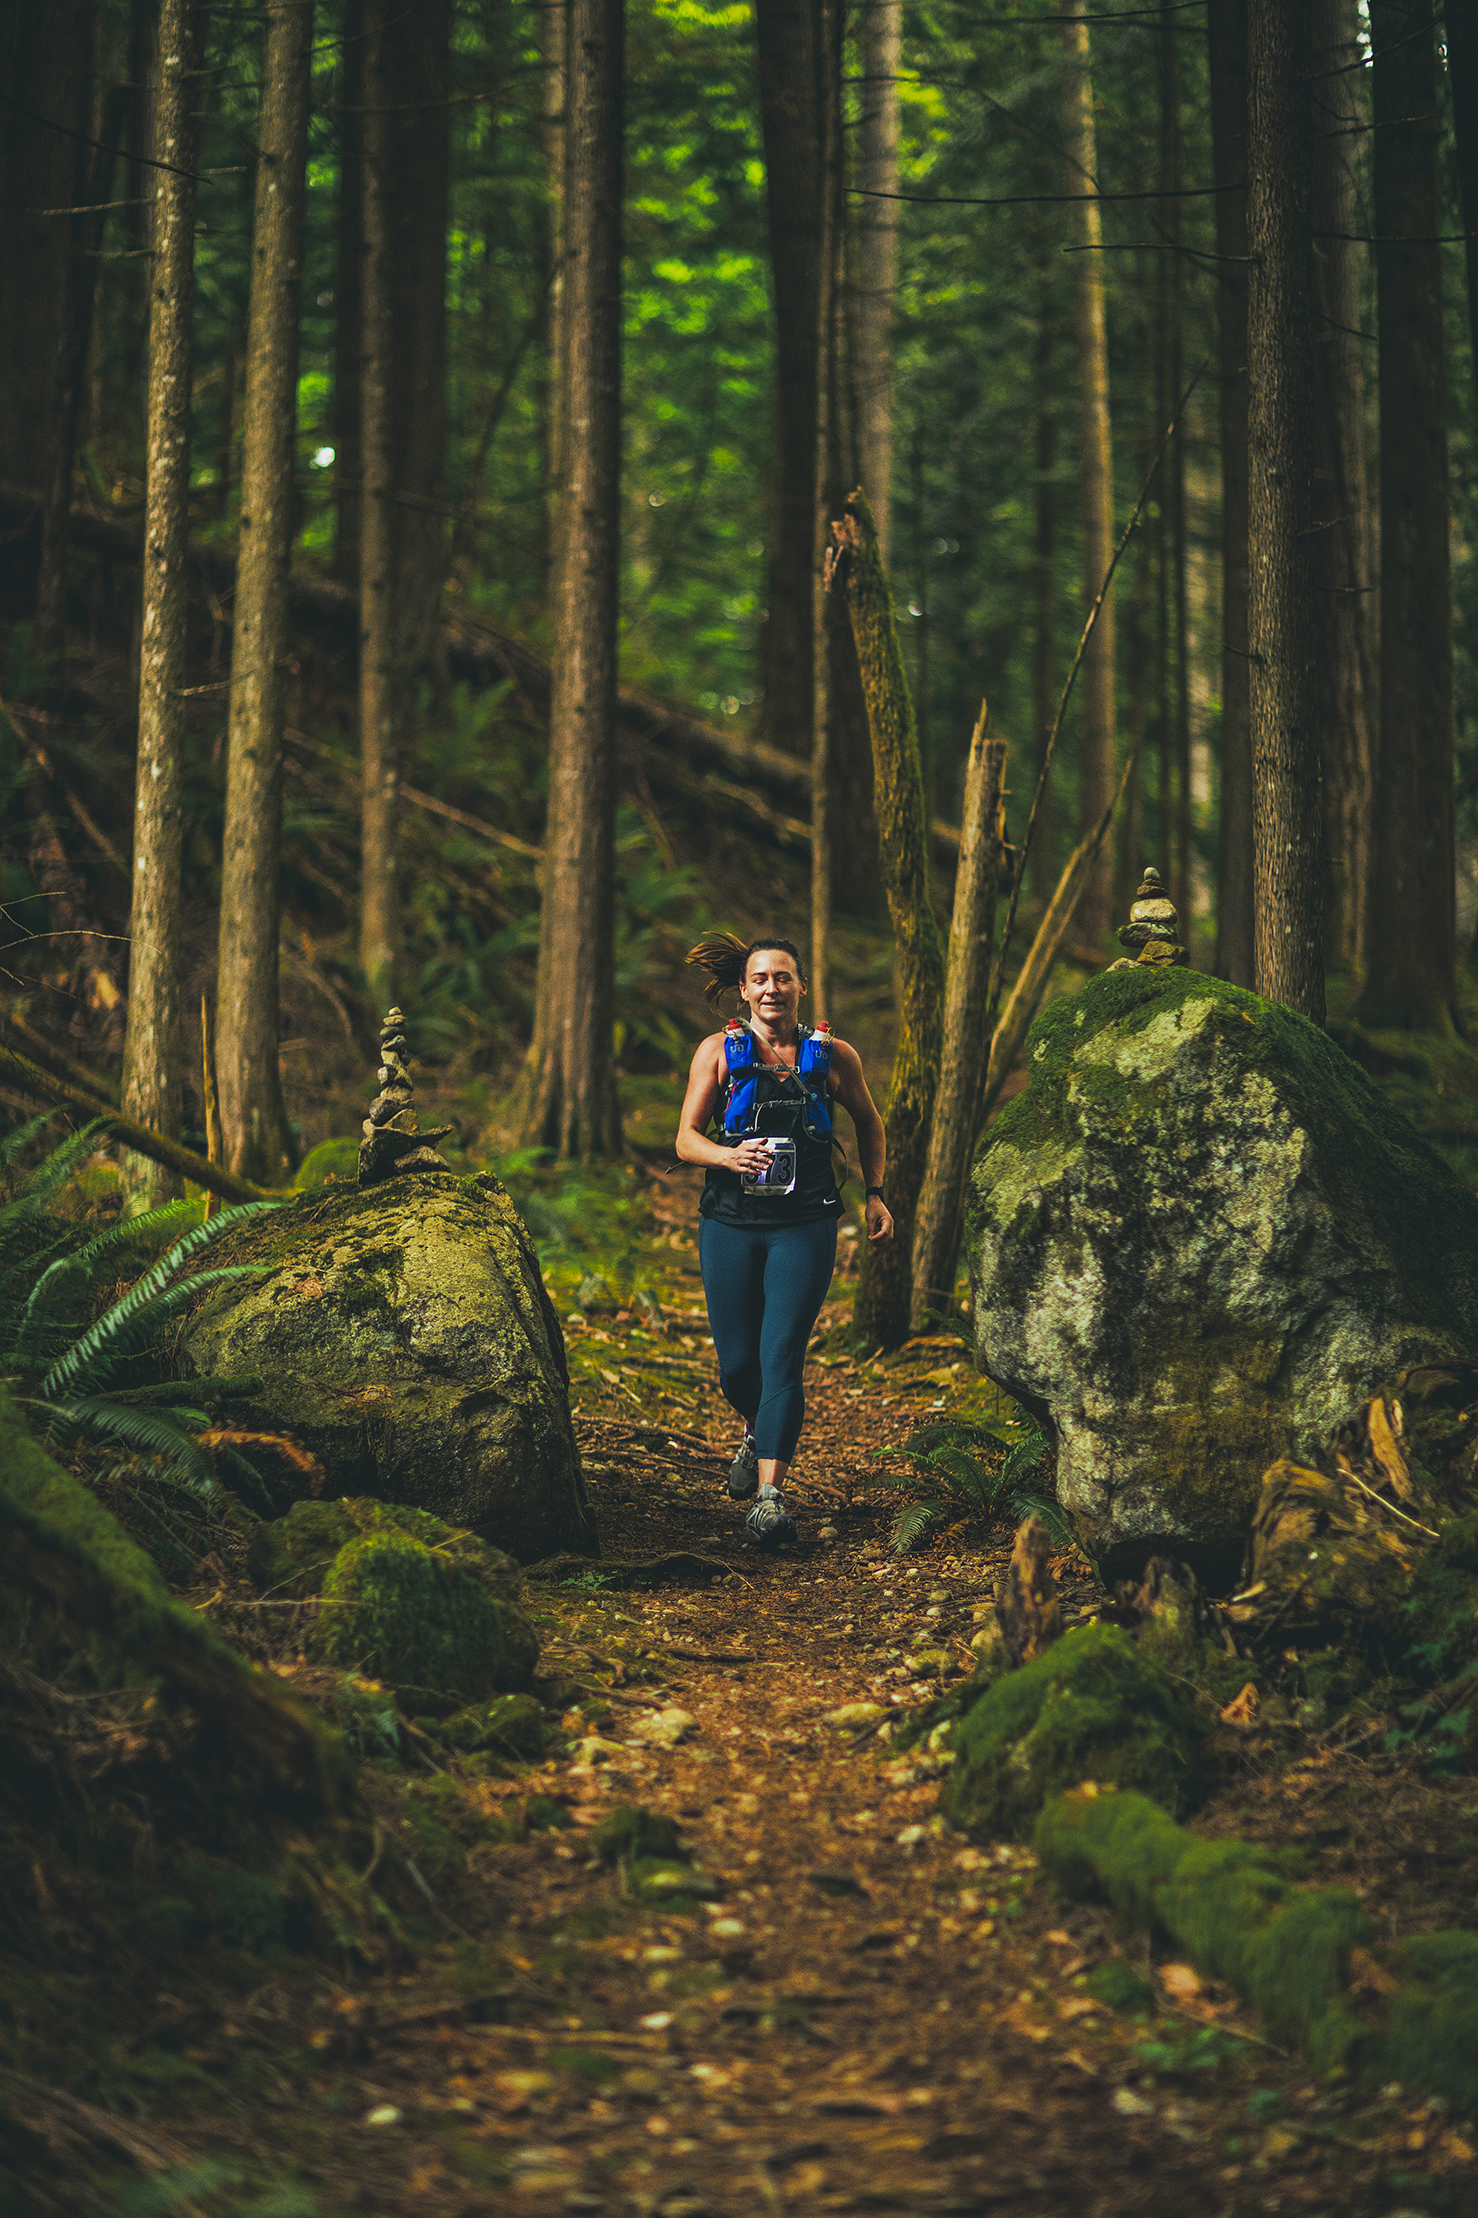 Fraser Valley Trail Races - Bear Mountain - IMG_2235 by Brice Ferre Studio - Vancouver Portrait Adventure and Athlete Photographer.jpg